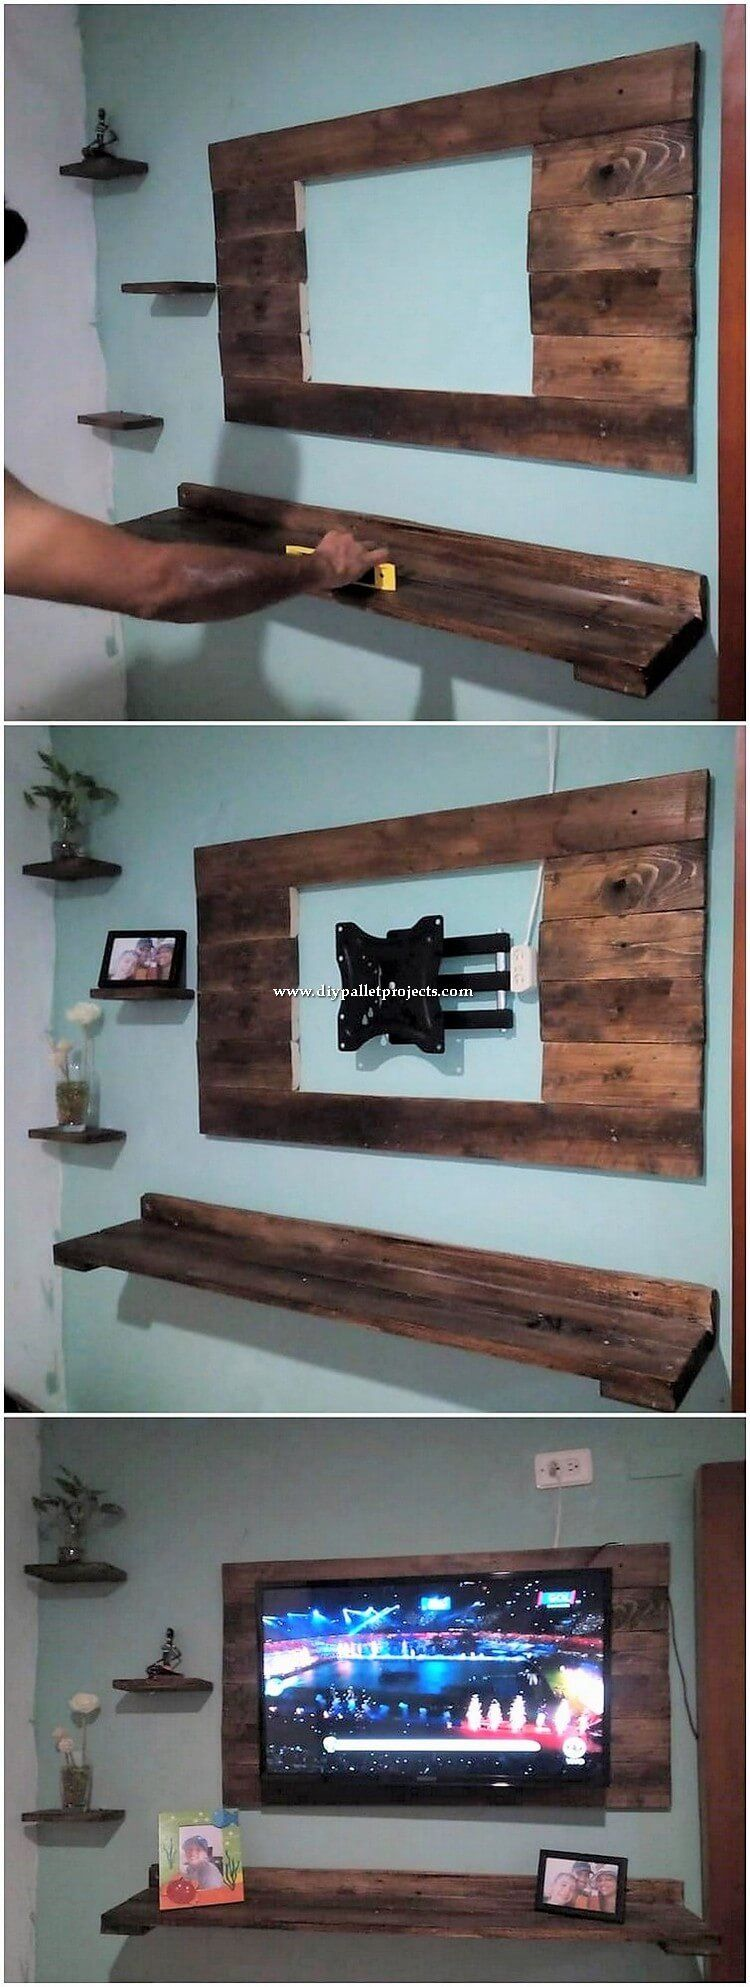 Such an elegant and elegant piece of wall LED designing is being carried out here for you! This wall LED is flawlessly added out with the pallet use where you can dramatic discover the involvement of compact sizing style is state-of-the-art set with the pallet use stacking that brings grace in the whole idea. #oldpalletsforcrafting